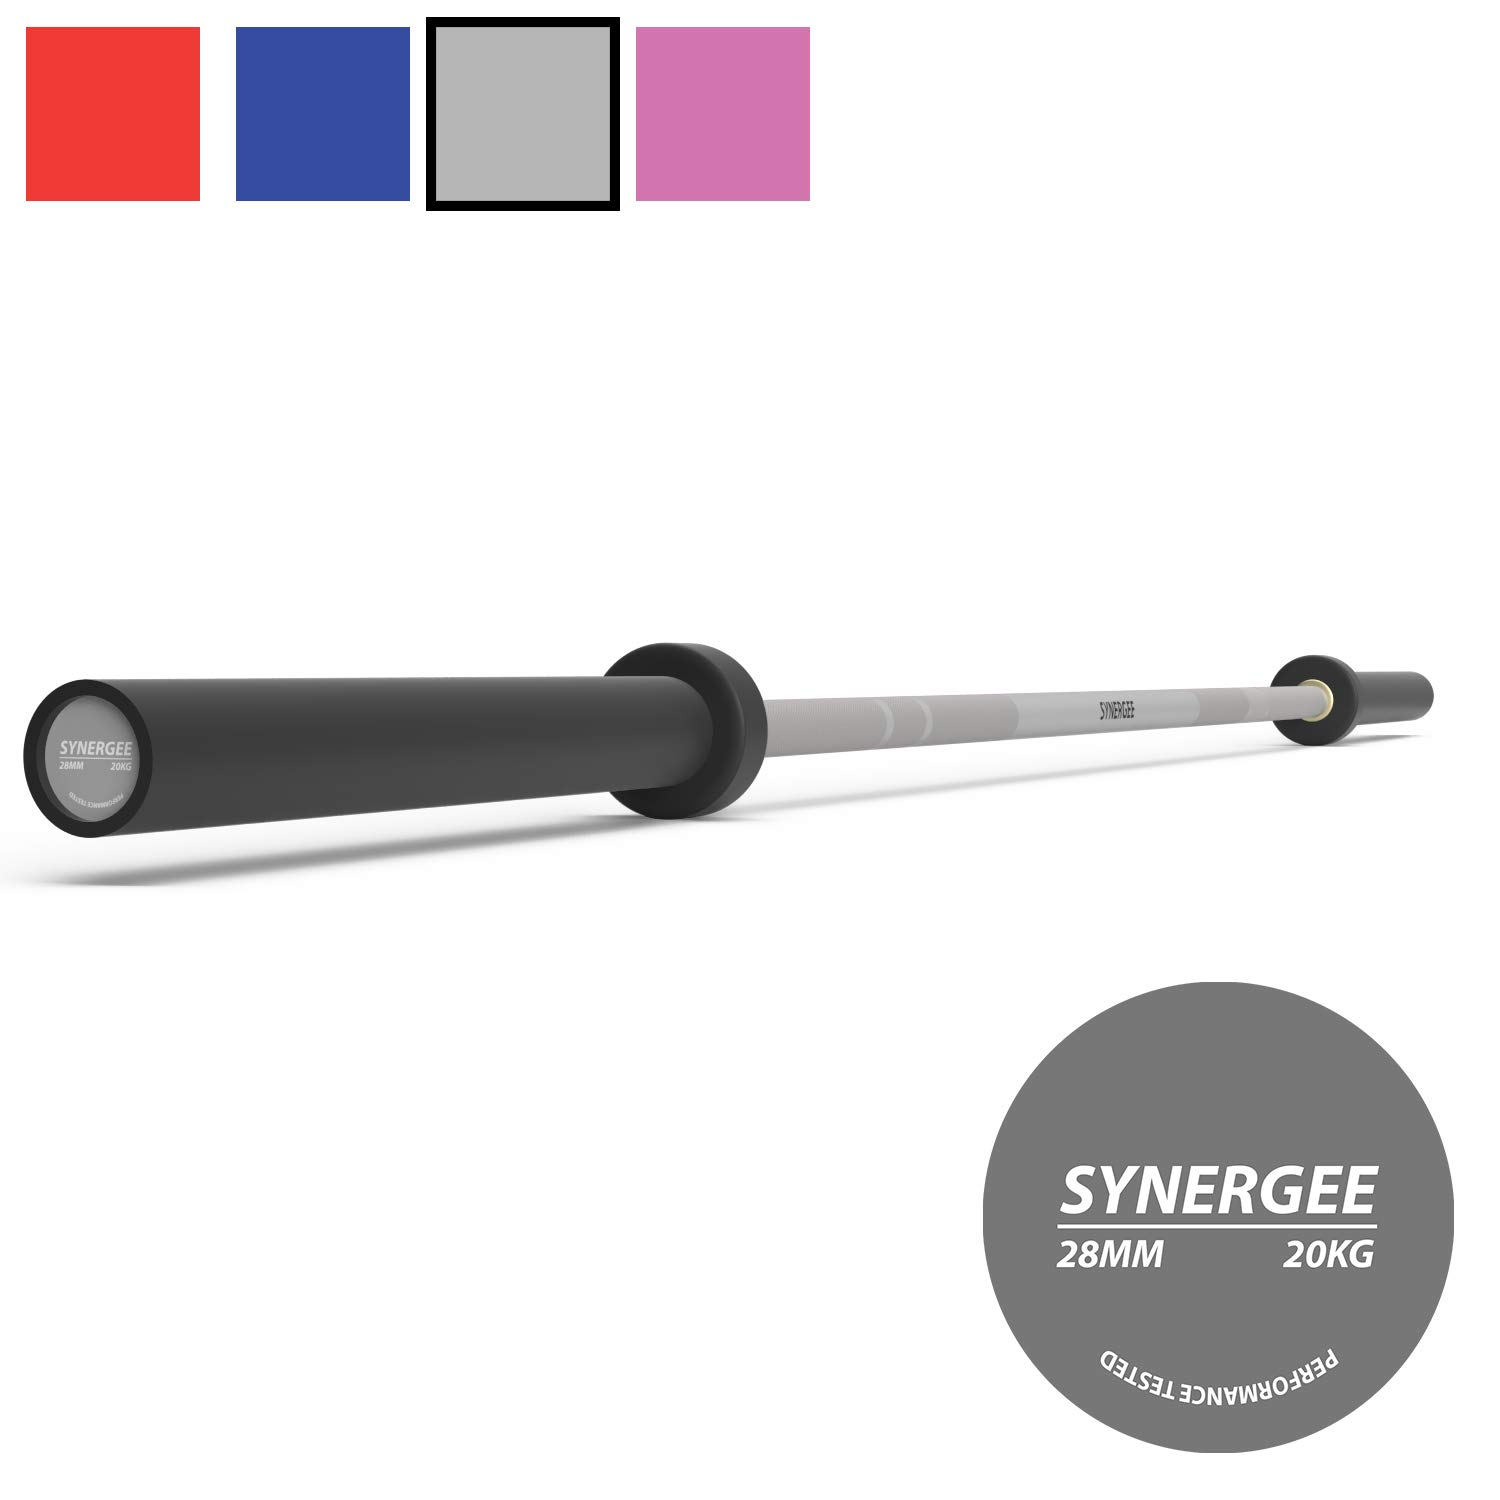 Synergee Games 20kg Colored Men's Gray Cerakote Barbell. Rated 1500lbs for Weightlifting, Powerlifting and Crossfit